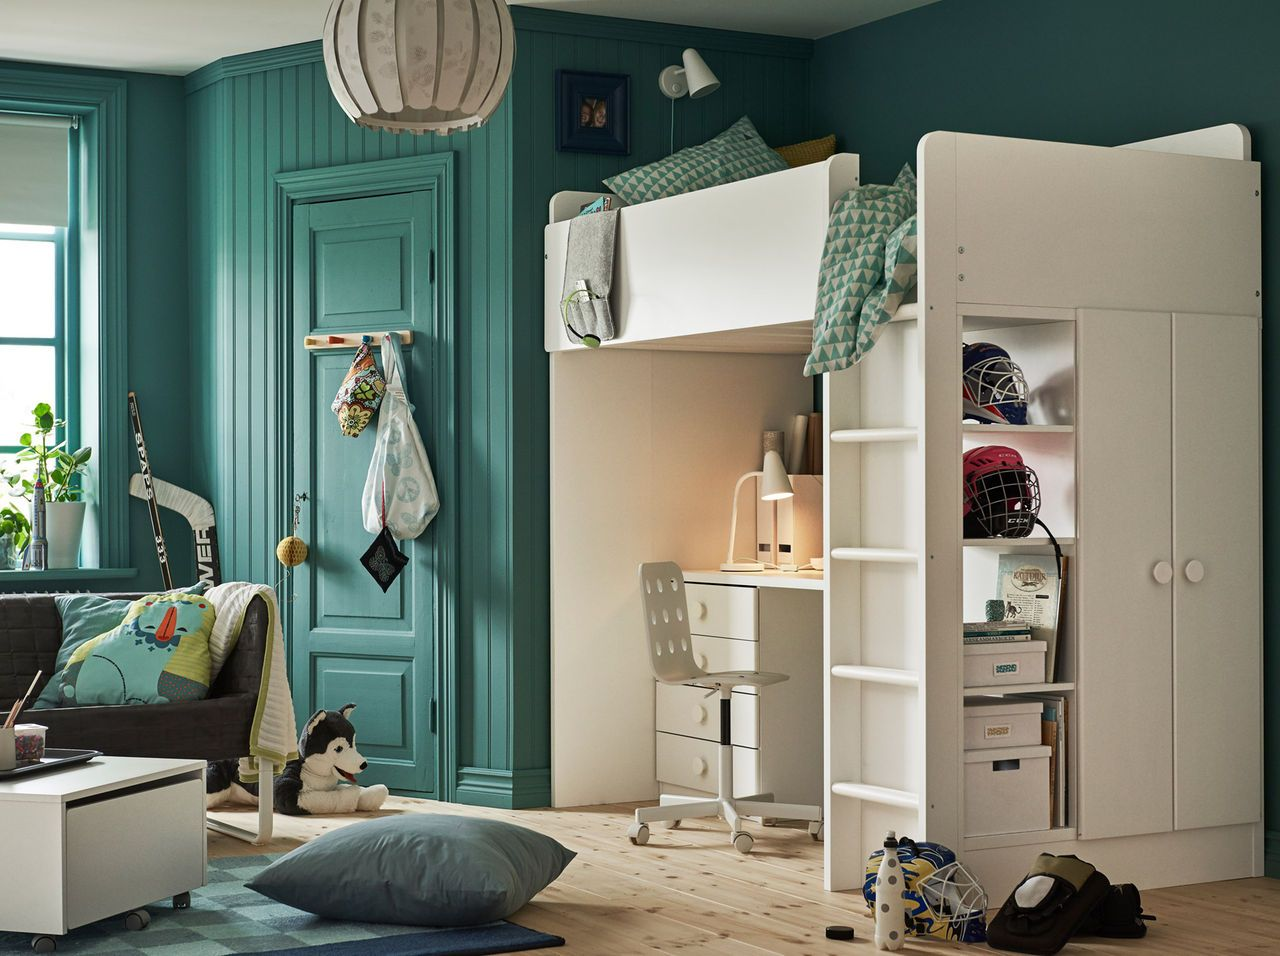 Children's bedroom with turquoise walls and white loft bed